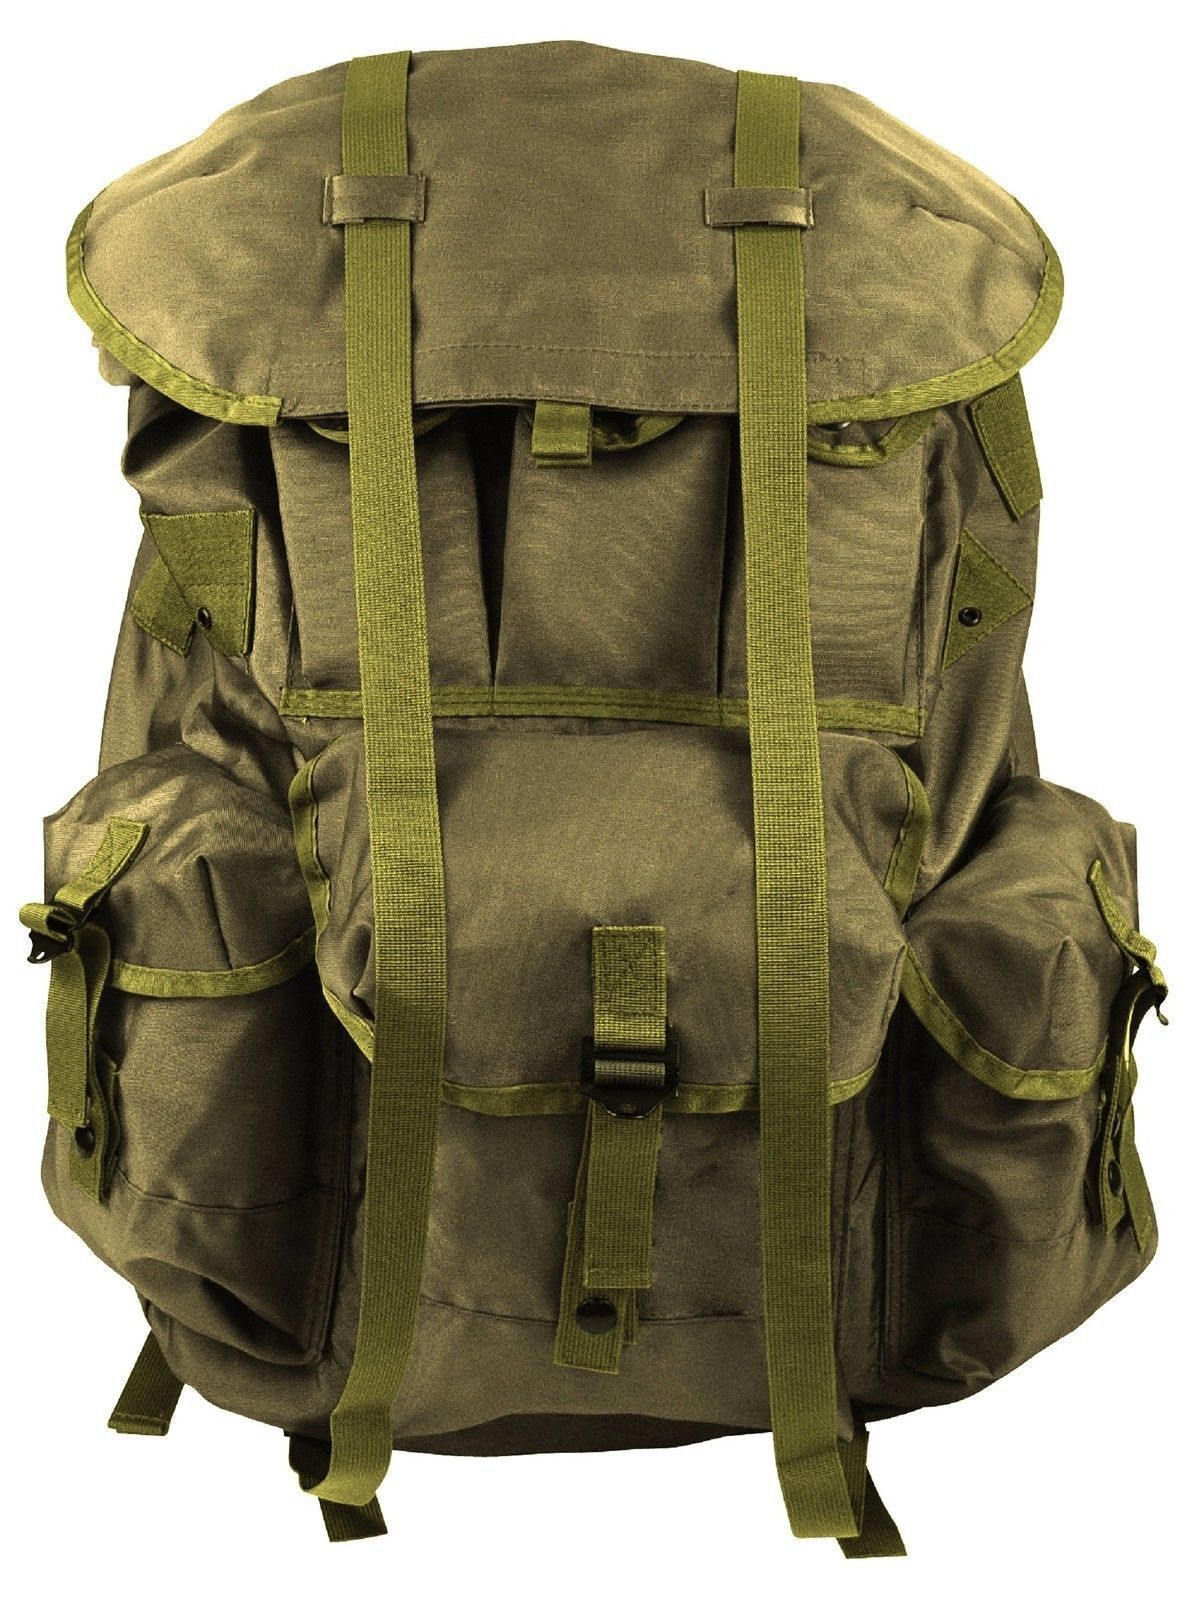 ALICE Packs Military Type Hiking Camping Framed Rucksack Backpack ...